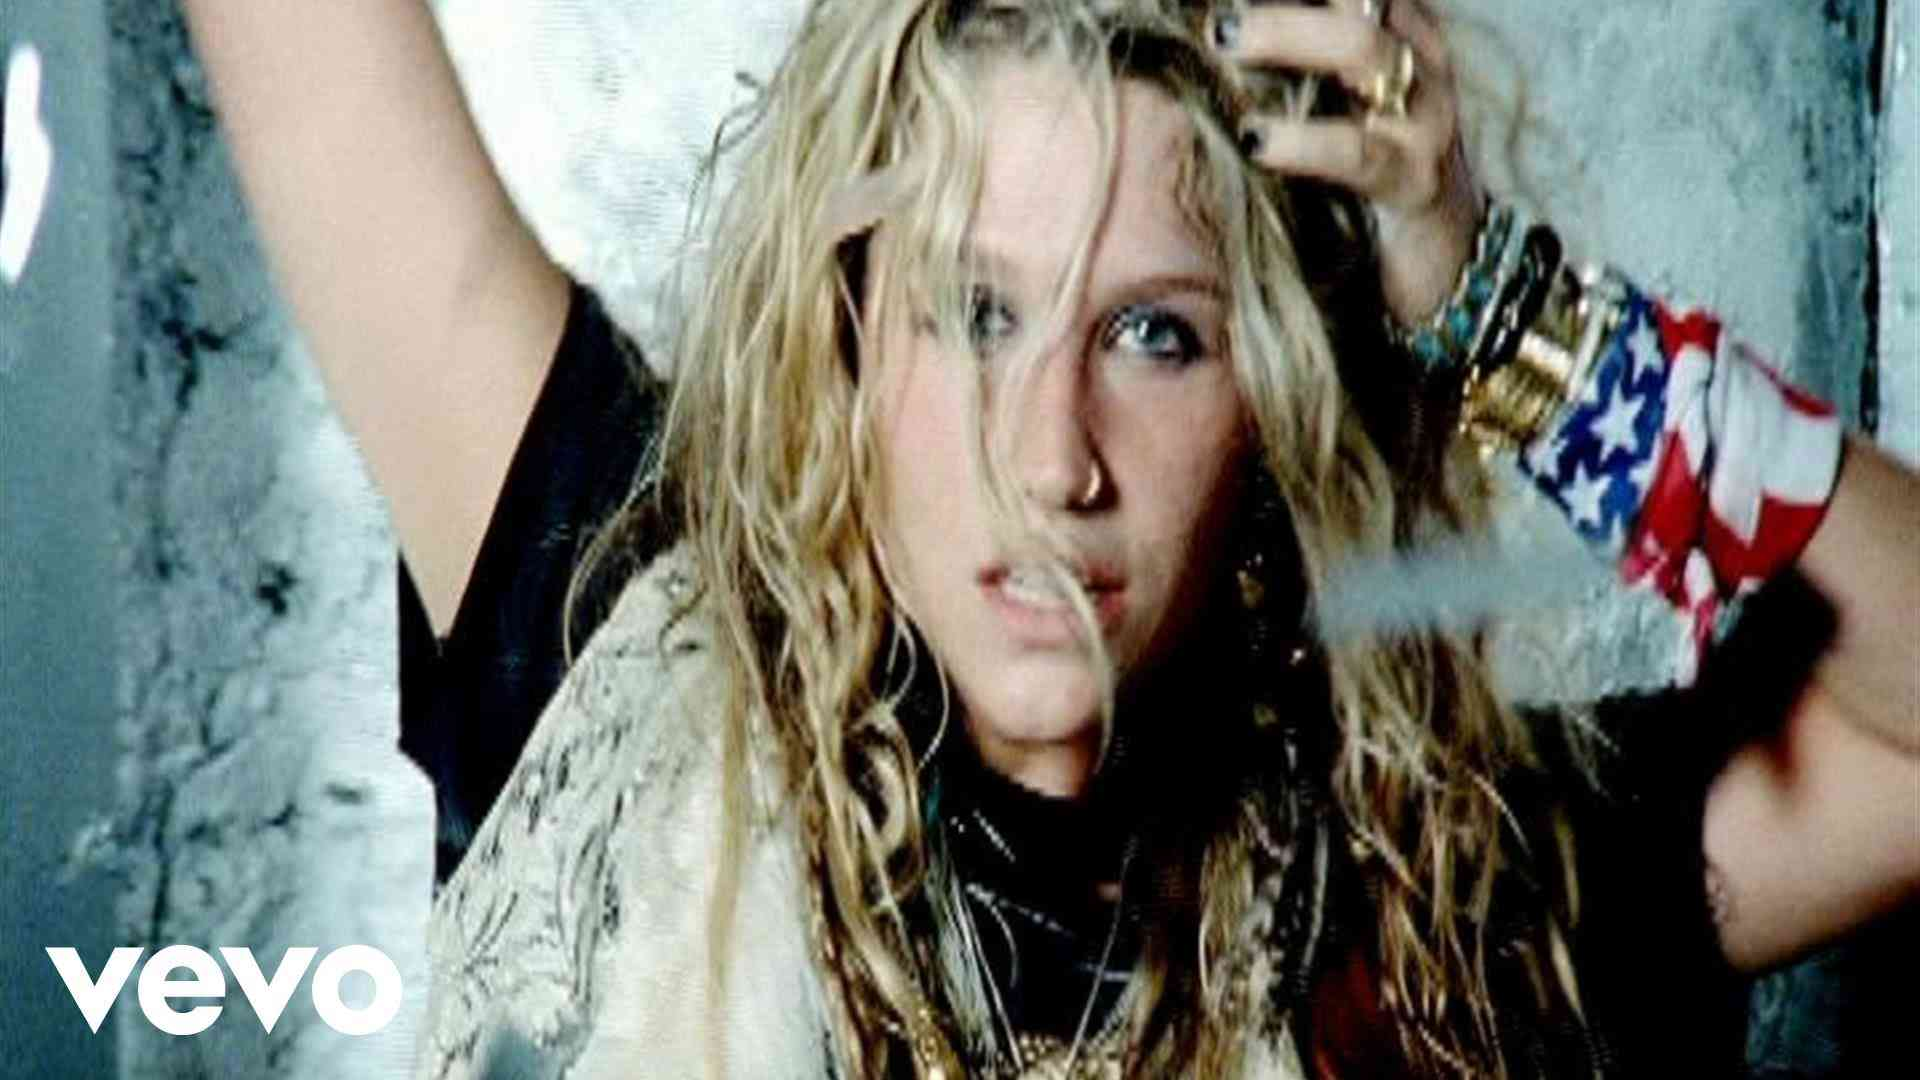 Ke$ha - TiK ToK - YouTube